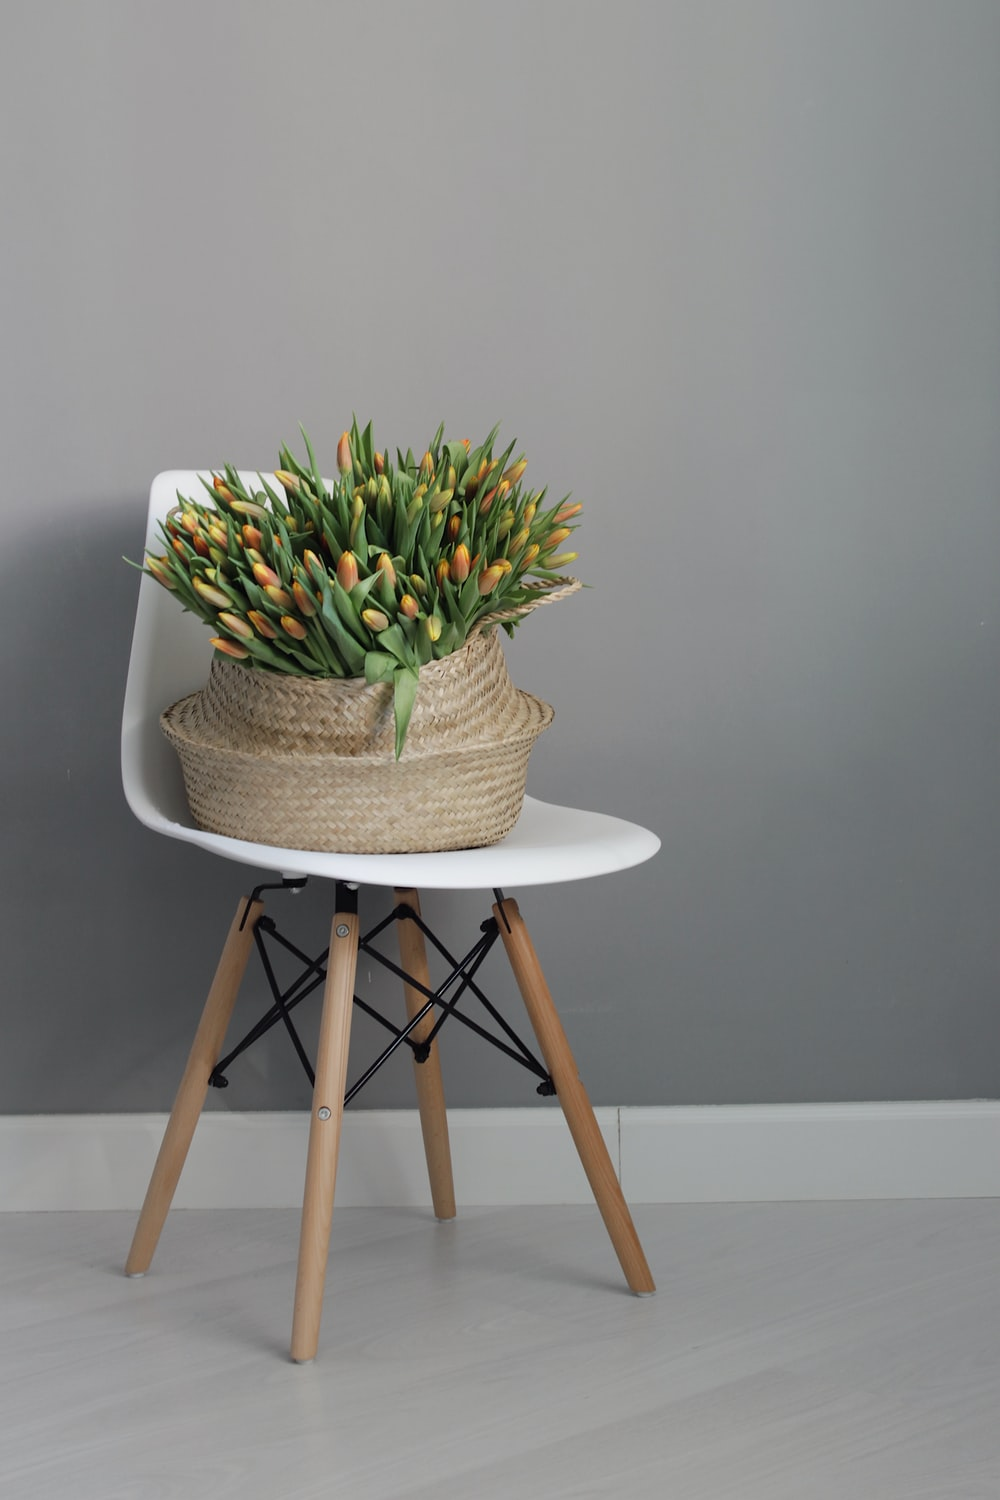 green and white plant on brown wooden seat